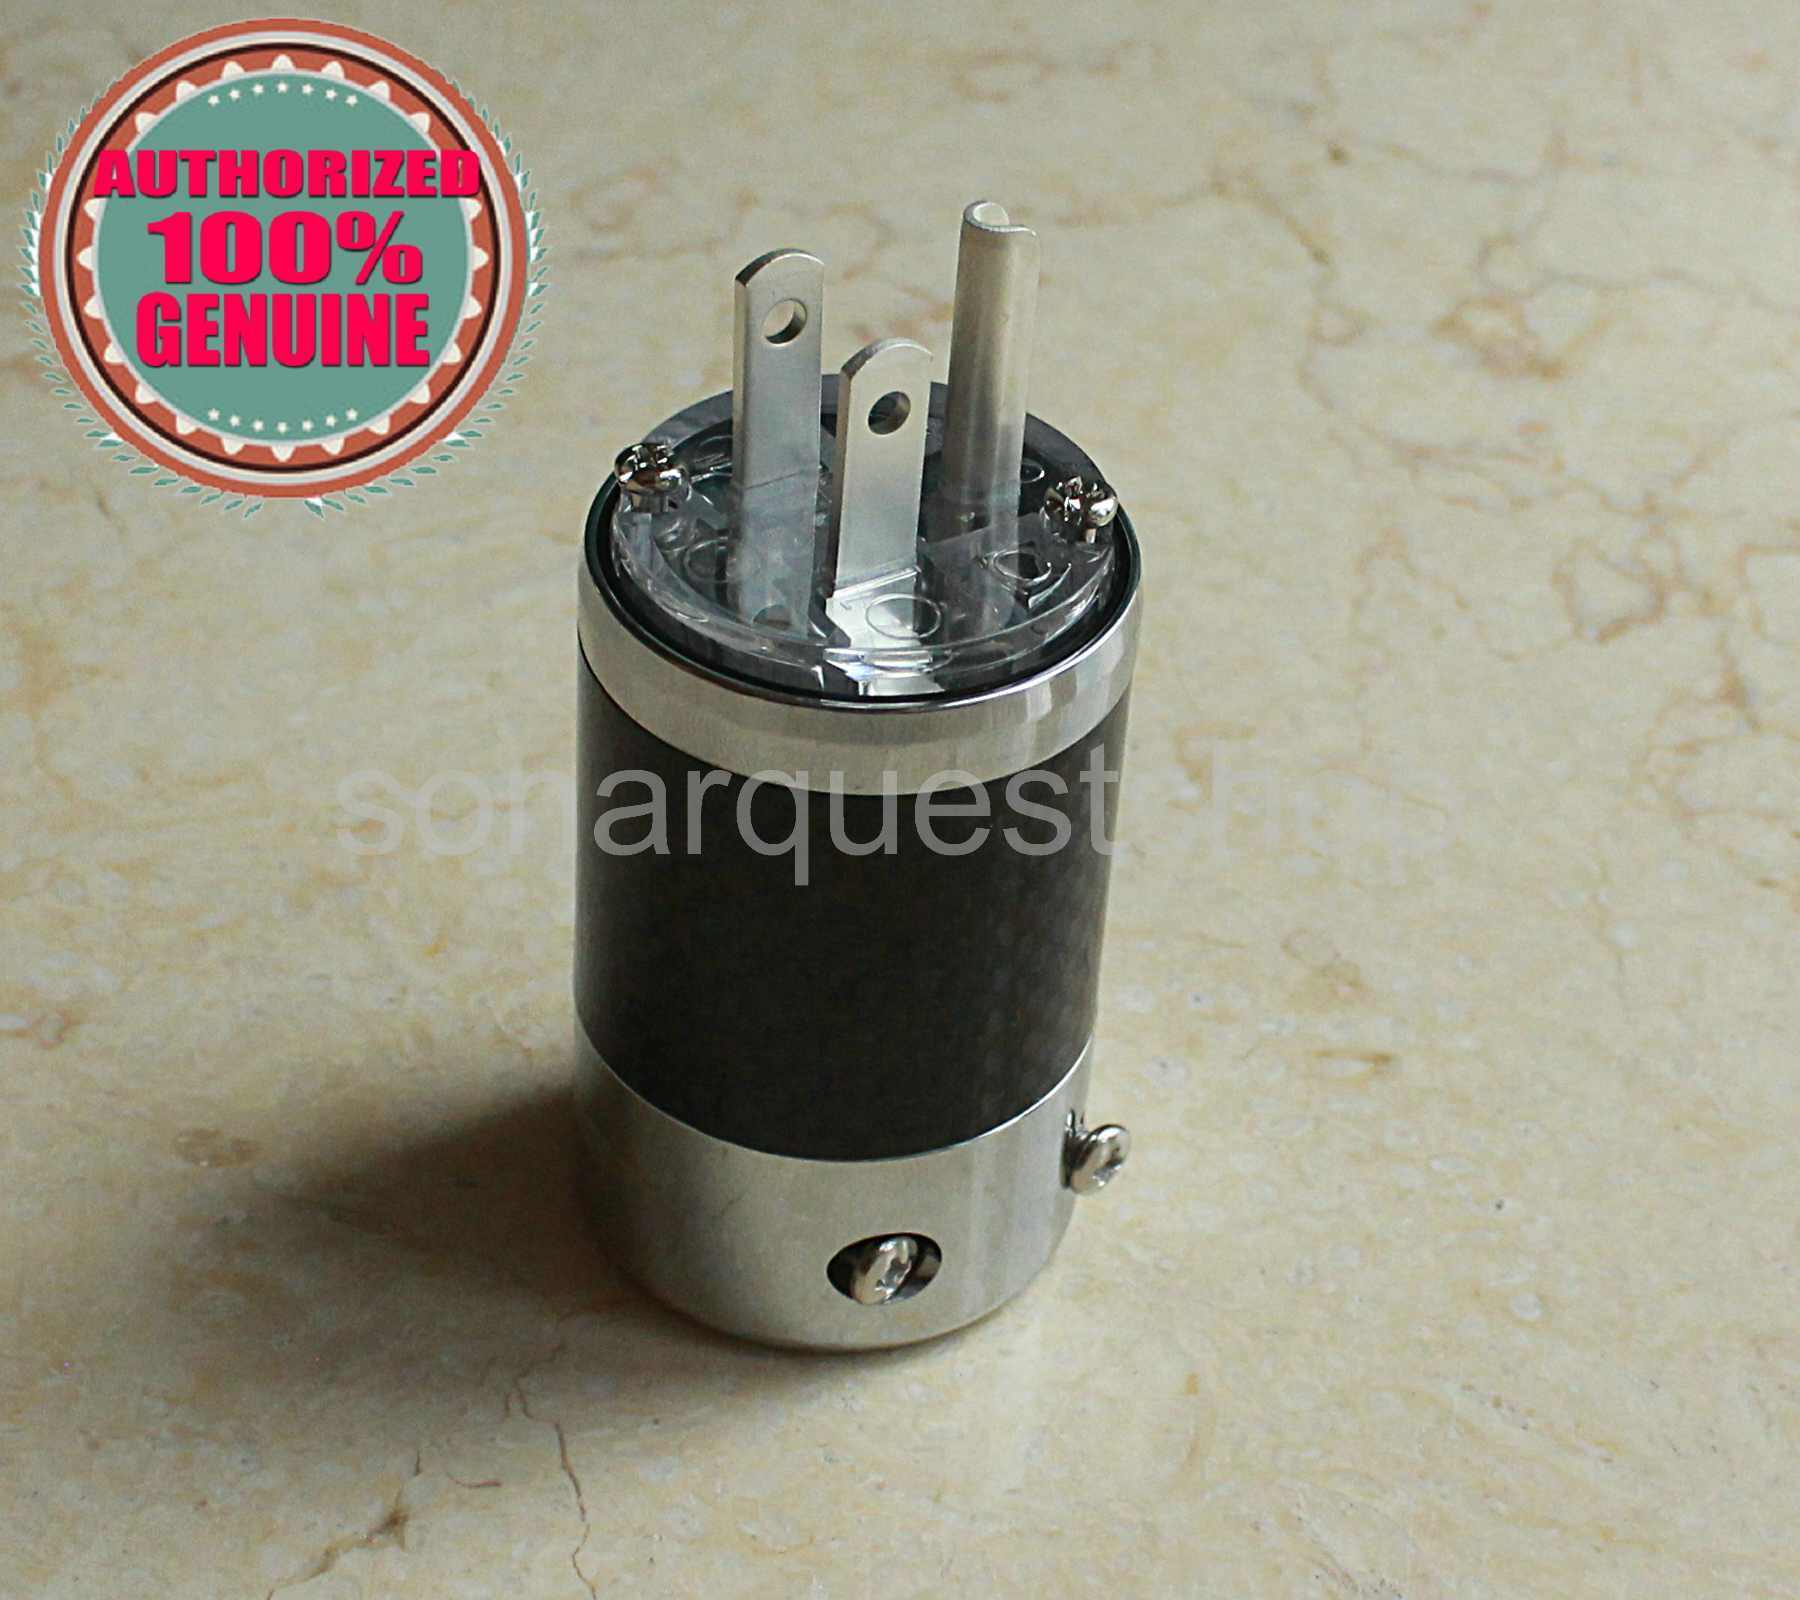 SONARQUEST SQ-P39(Ag)T US silver Plated UT Carbon fiber Power Plug